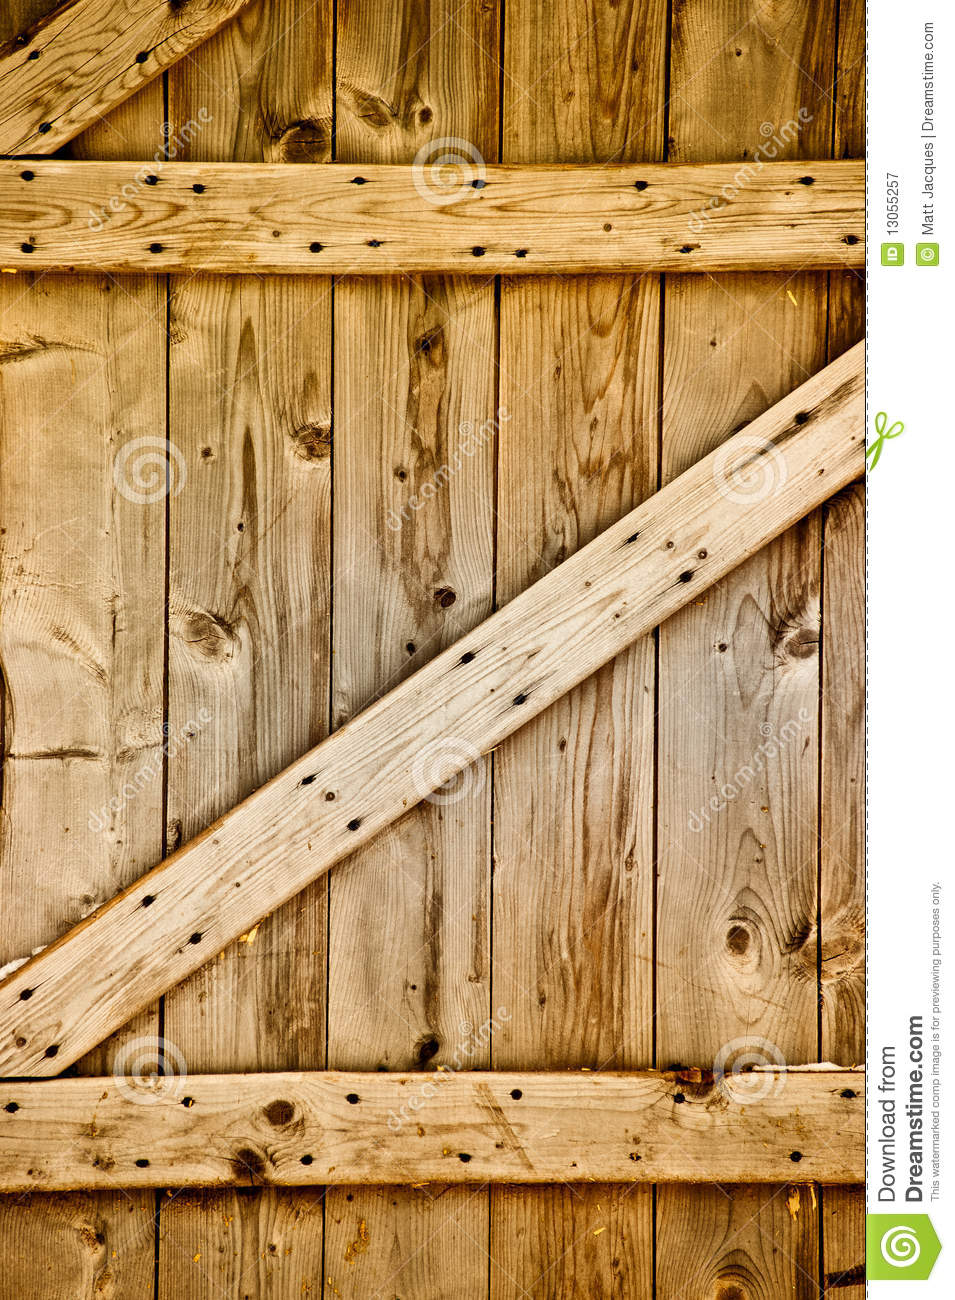 Wooden Rustic Barn Door Detail. Royalty Free Stock Photography - Image ...